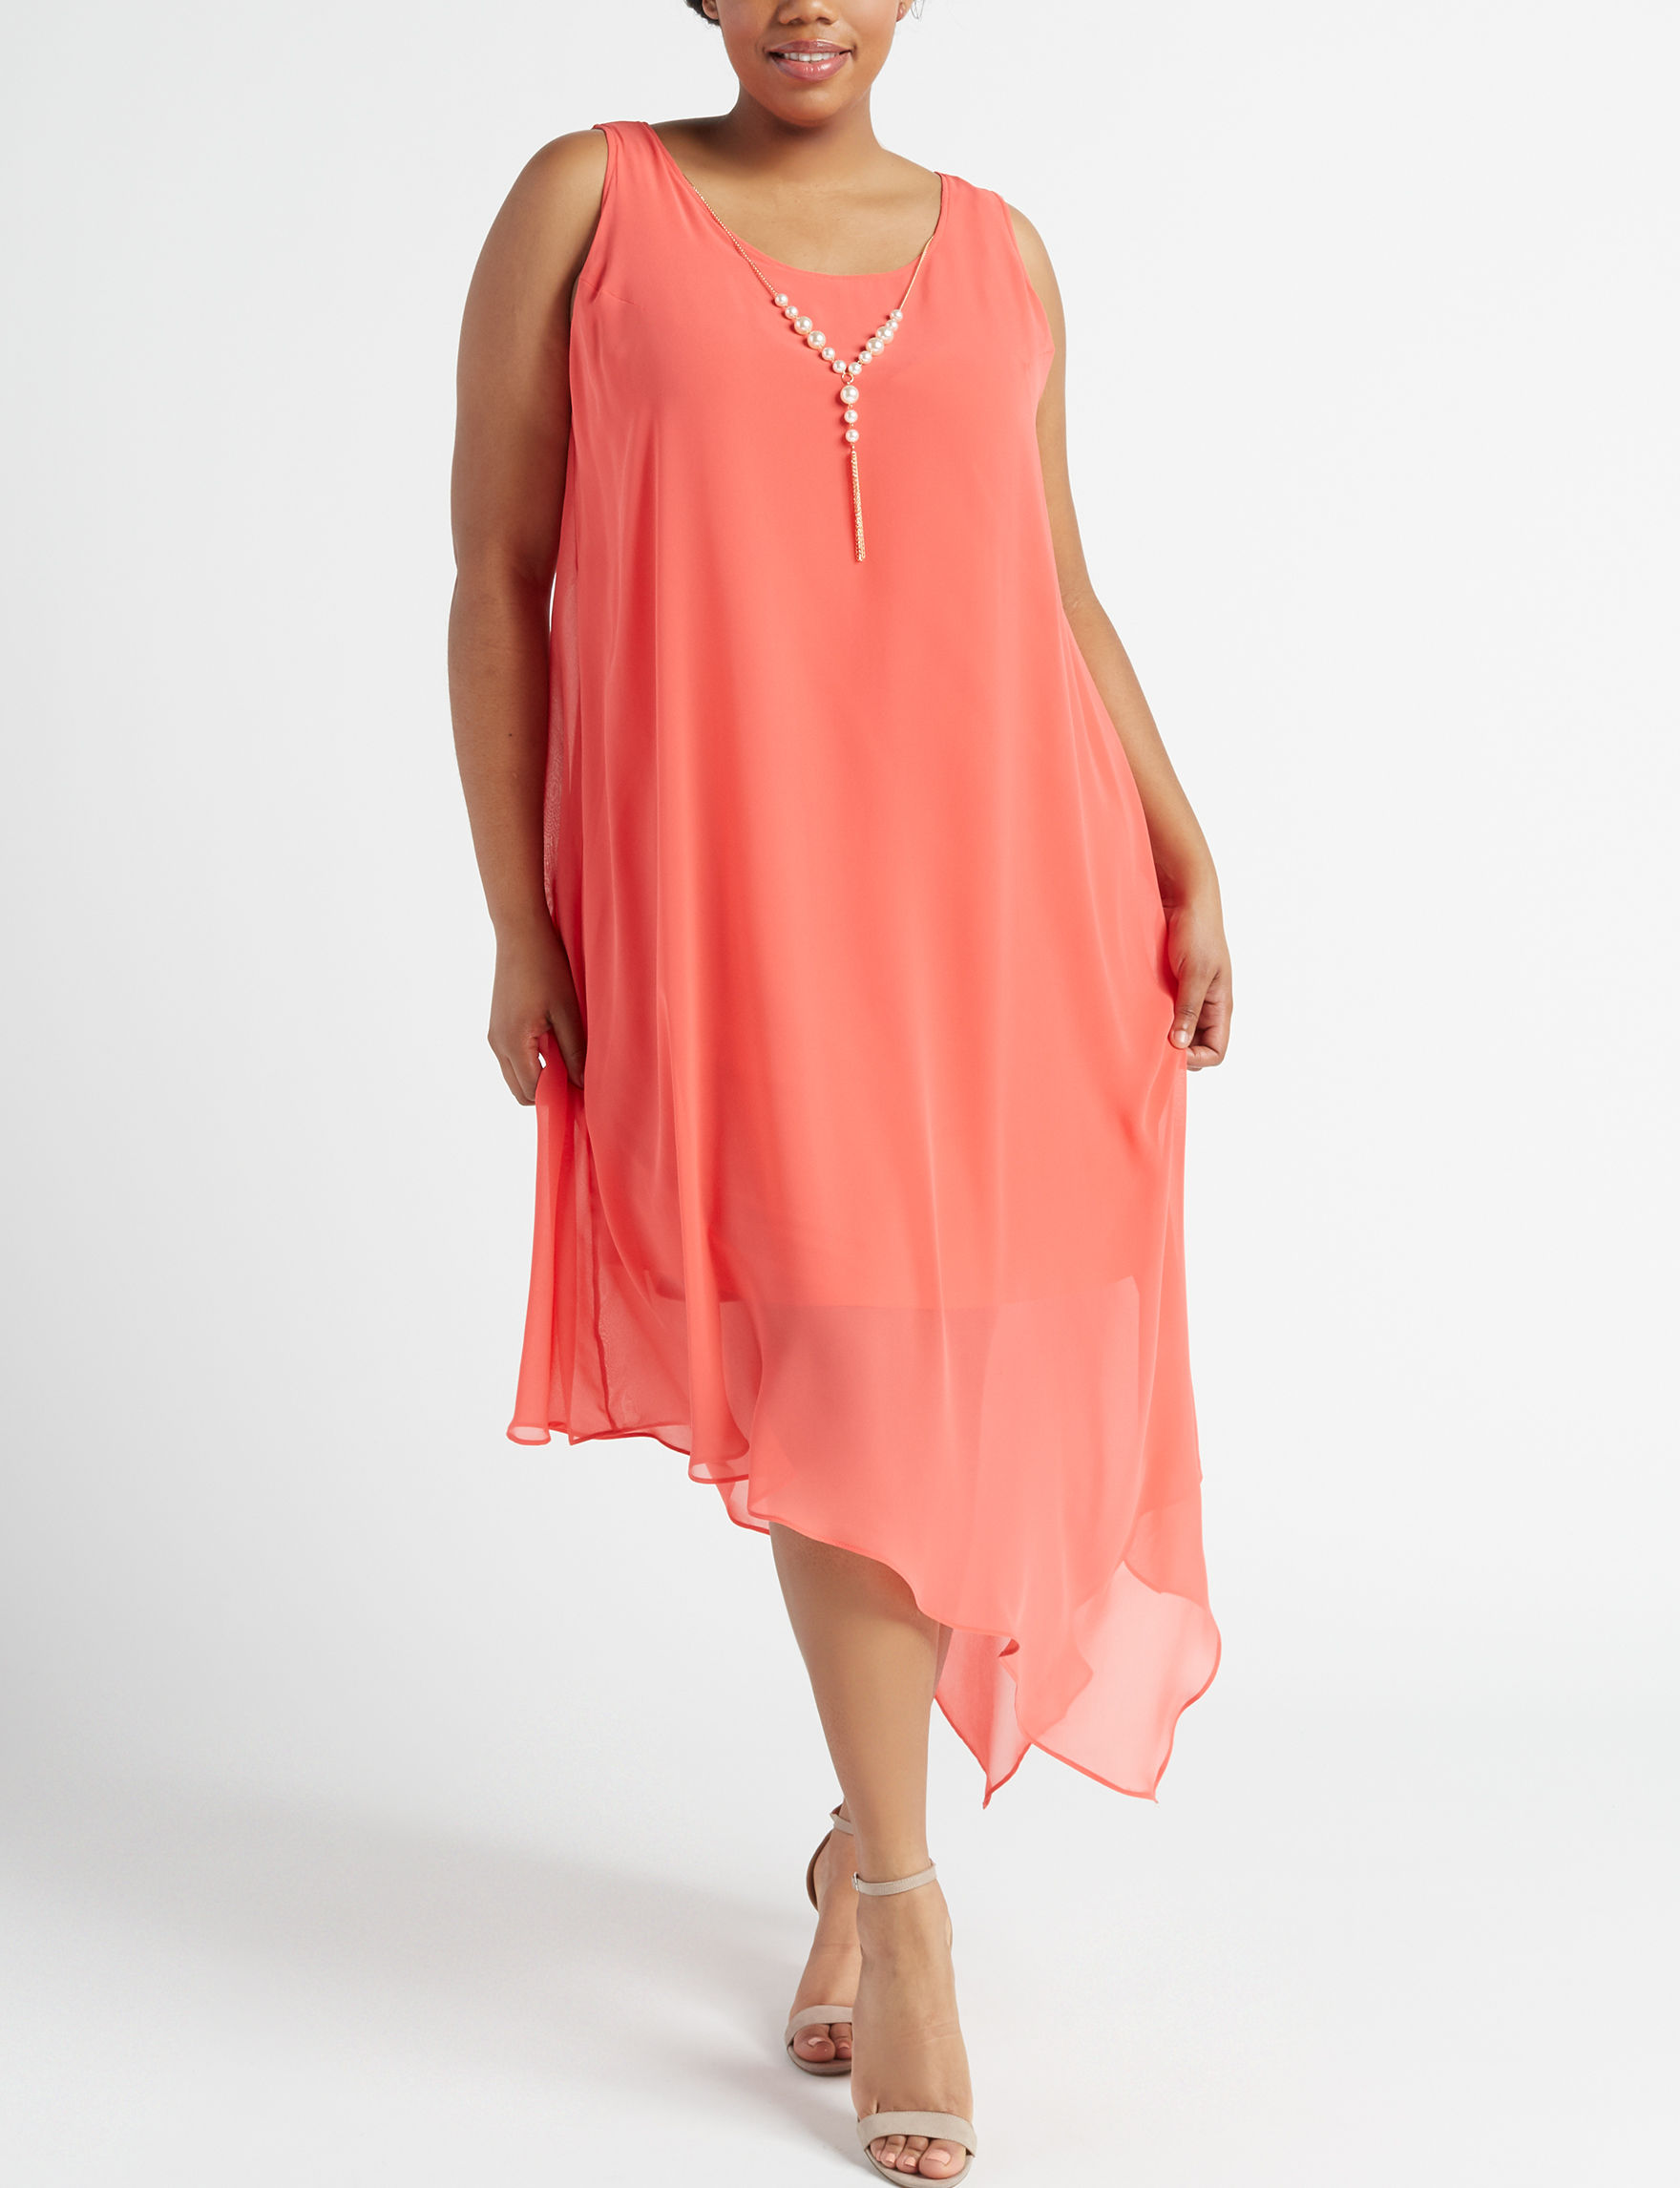 Glamour Coral Everyday & Casual Shift Dresses